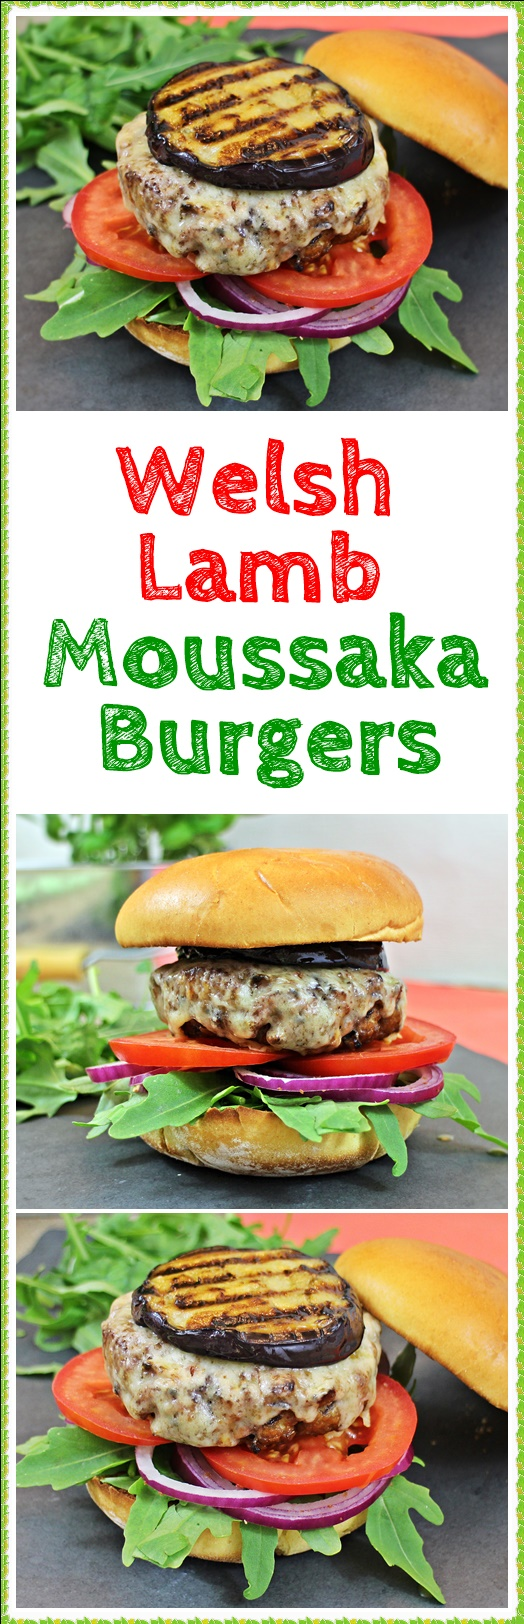 Welsh Lamb Moussaka Burgers - Fab Food 4 All